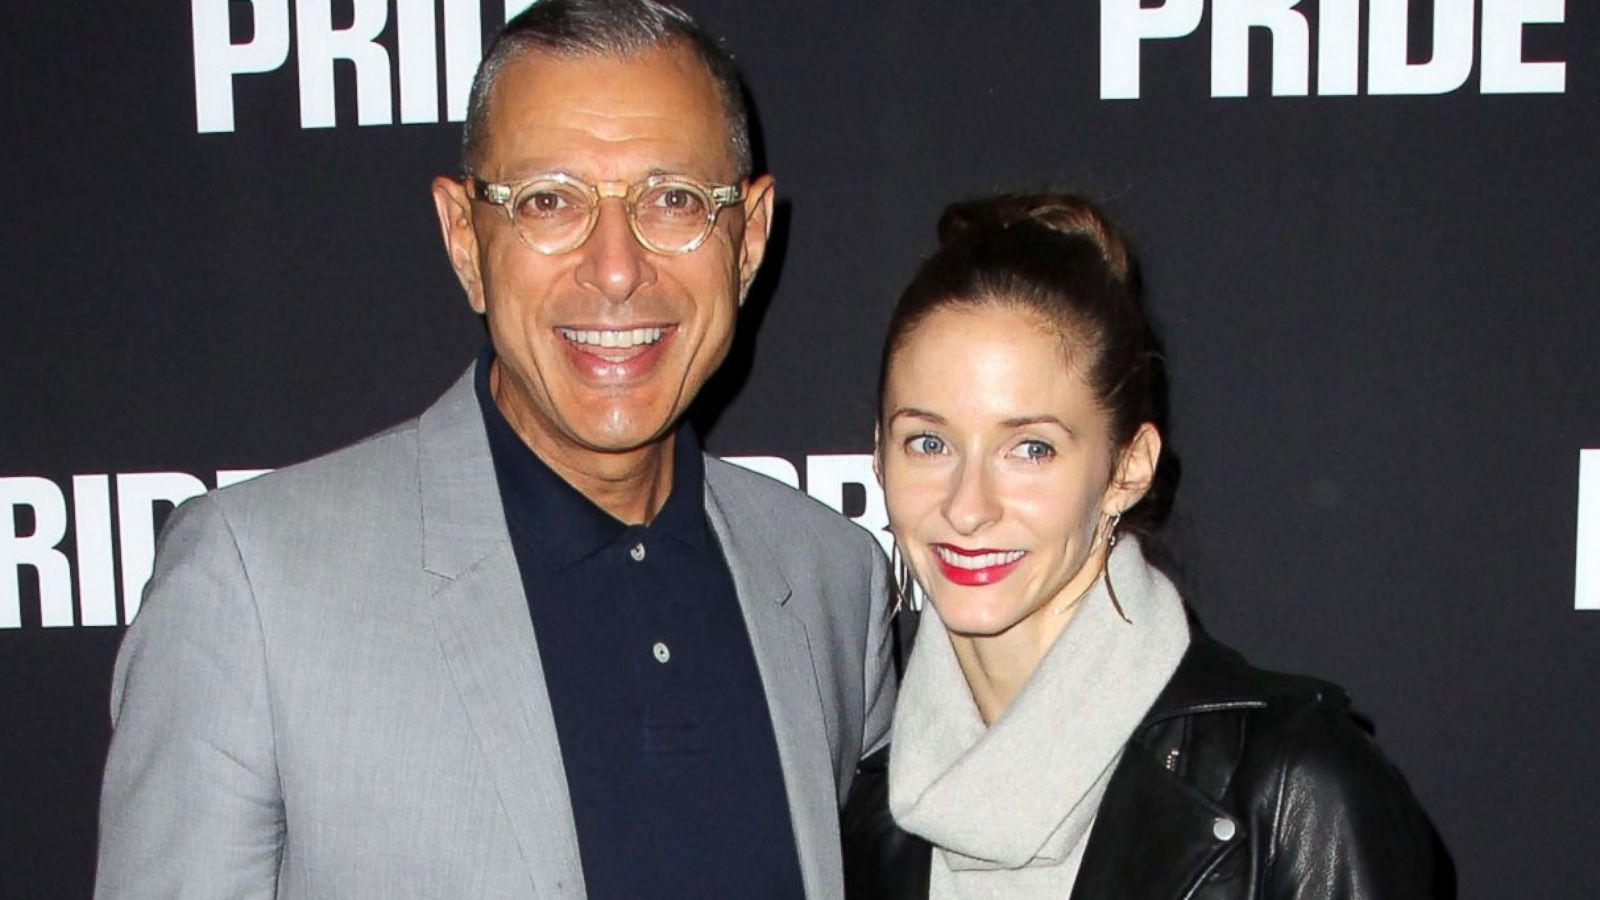 Independence Day Star Jeff Goldblum Welcomes Baby On July 4 Abc News